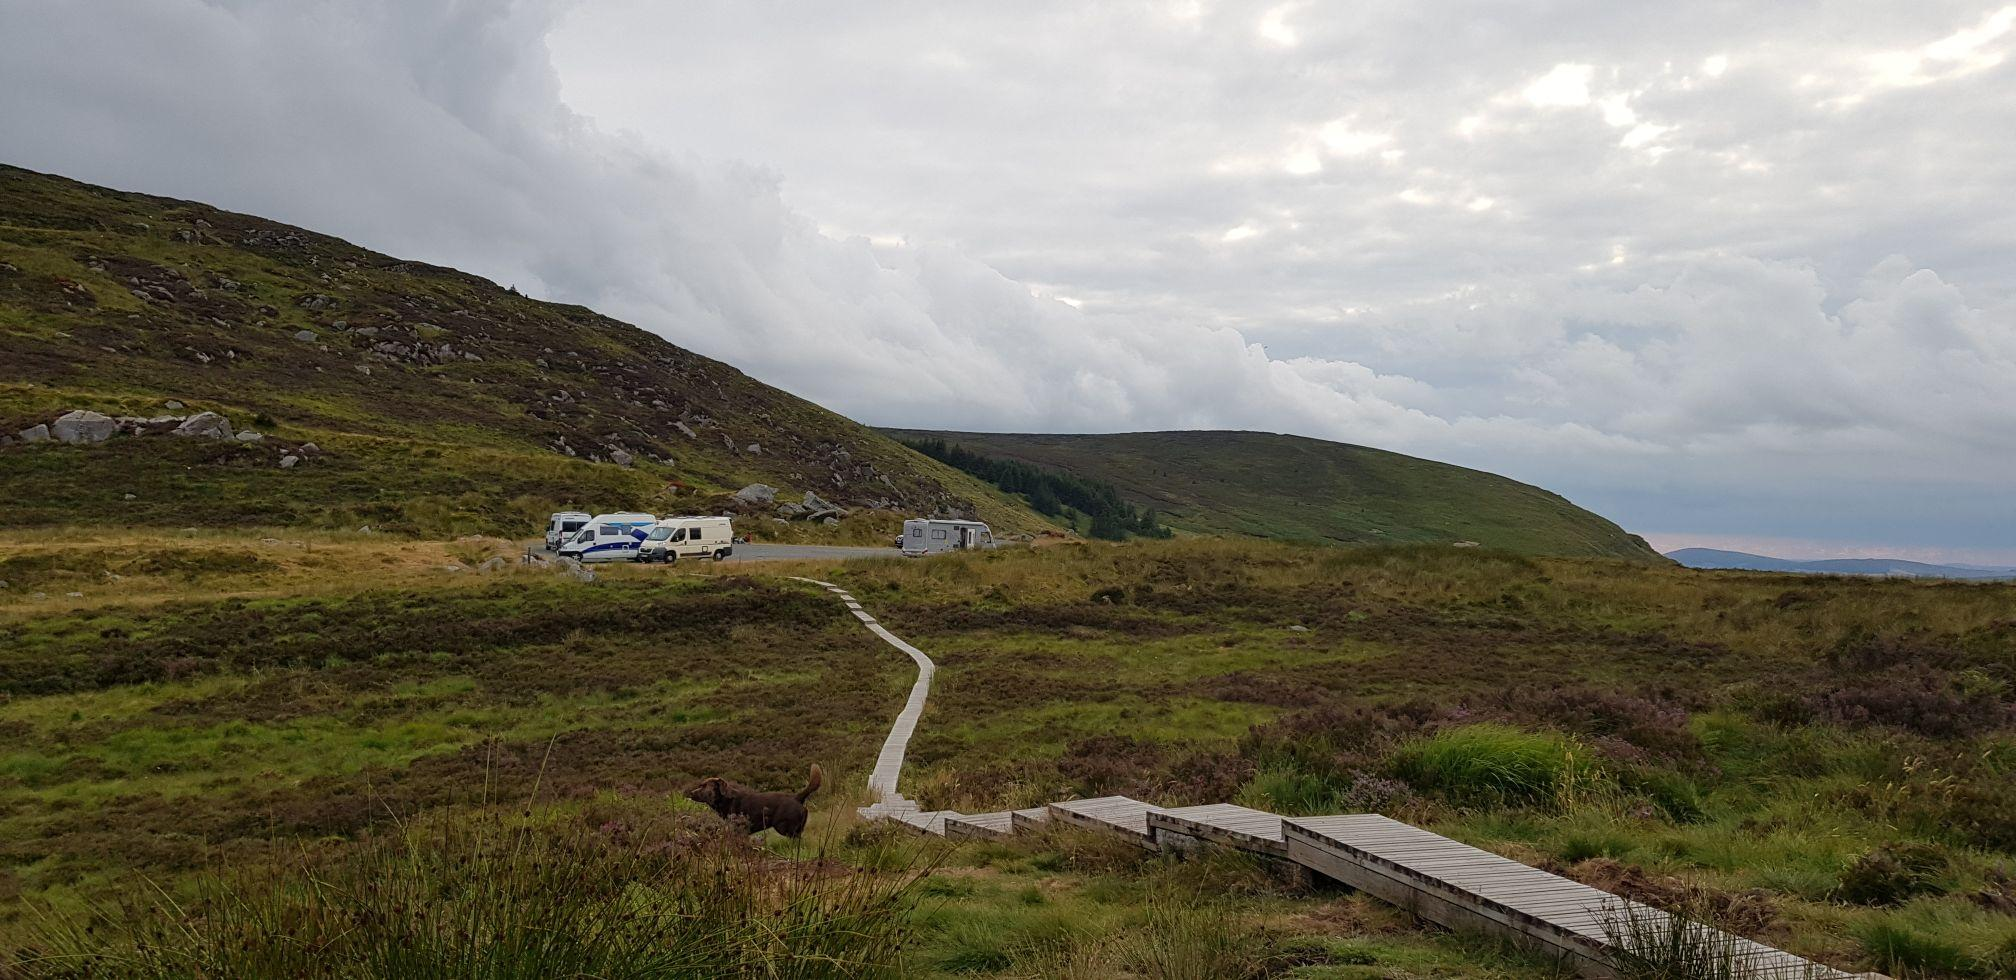 Turlough Hill dat parking